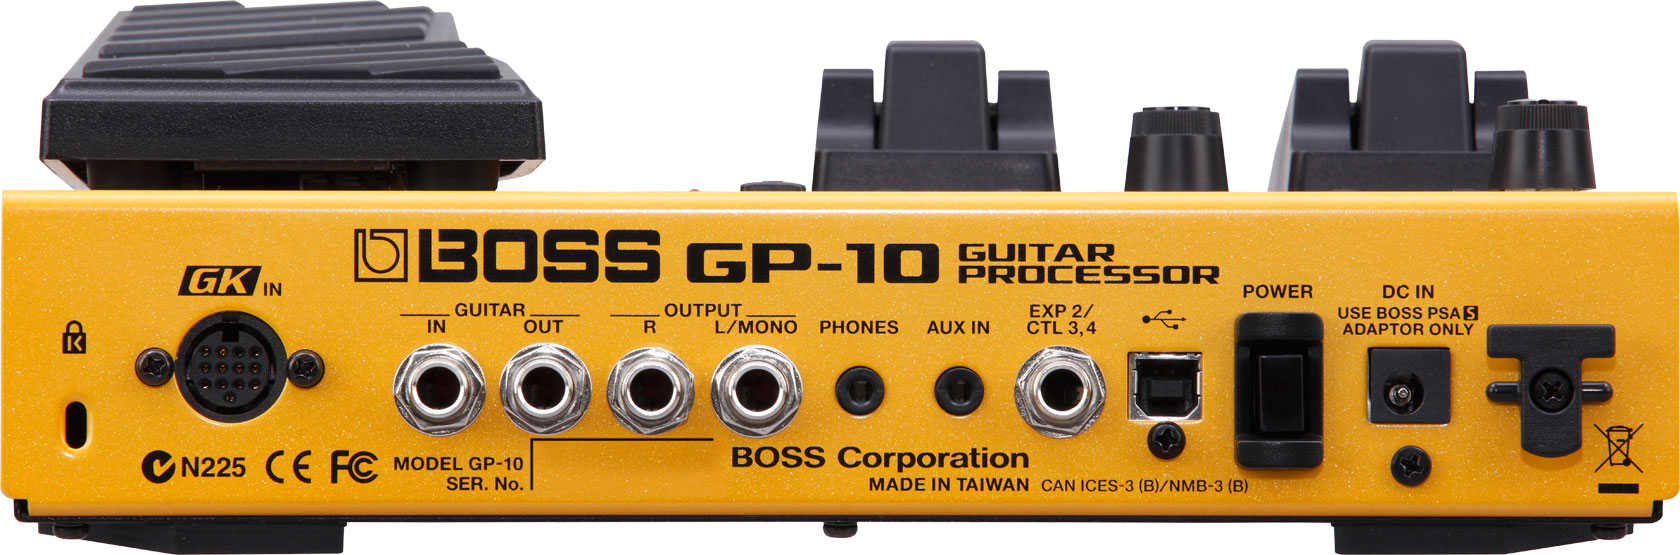 Boss Gp 10 Guitar Processor Pedal Switch Wiring Diagrams Free Engine Image For